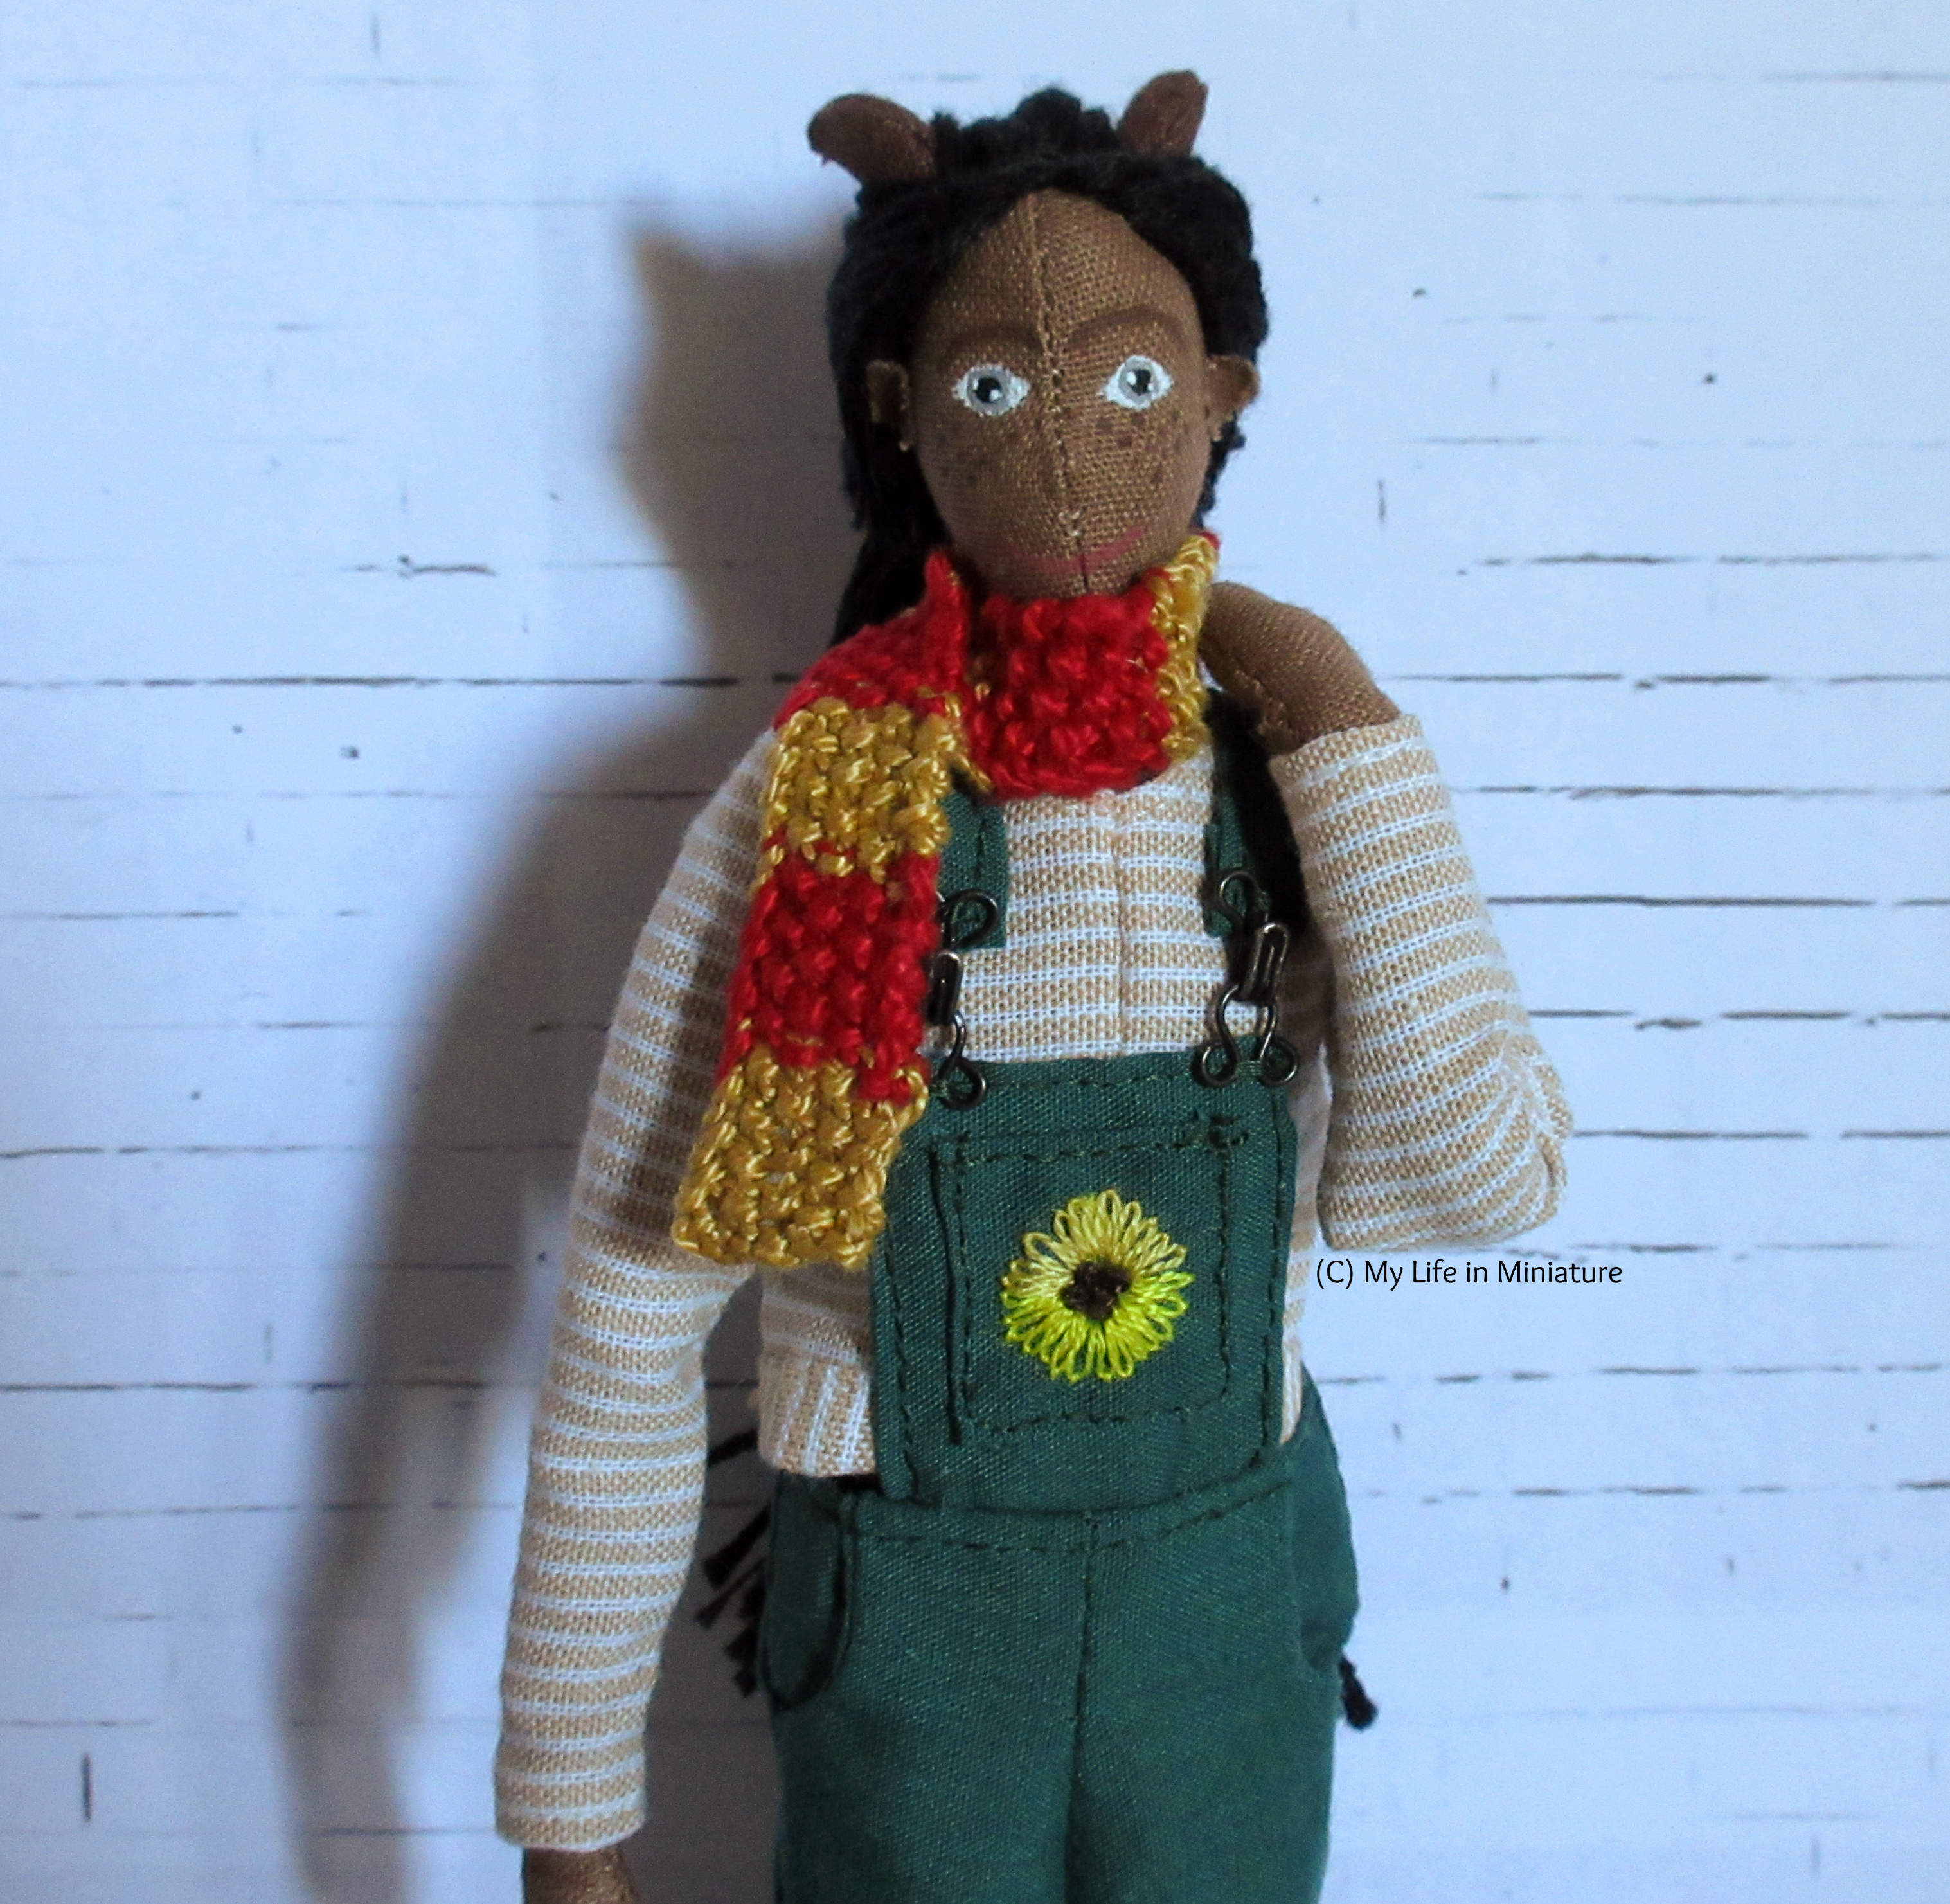 Petra wears the long-sleeved top with her green dungarees and a red-and-gold striped knitted scarf. One hand is on her shoulder, and she smiles at the camera.